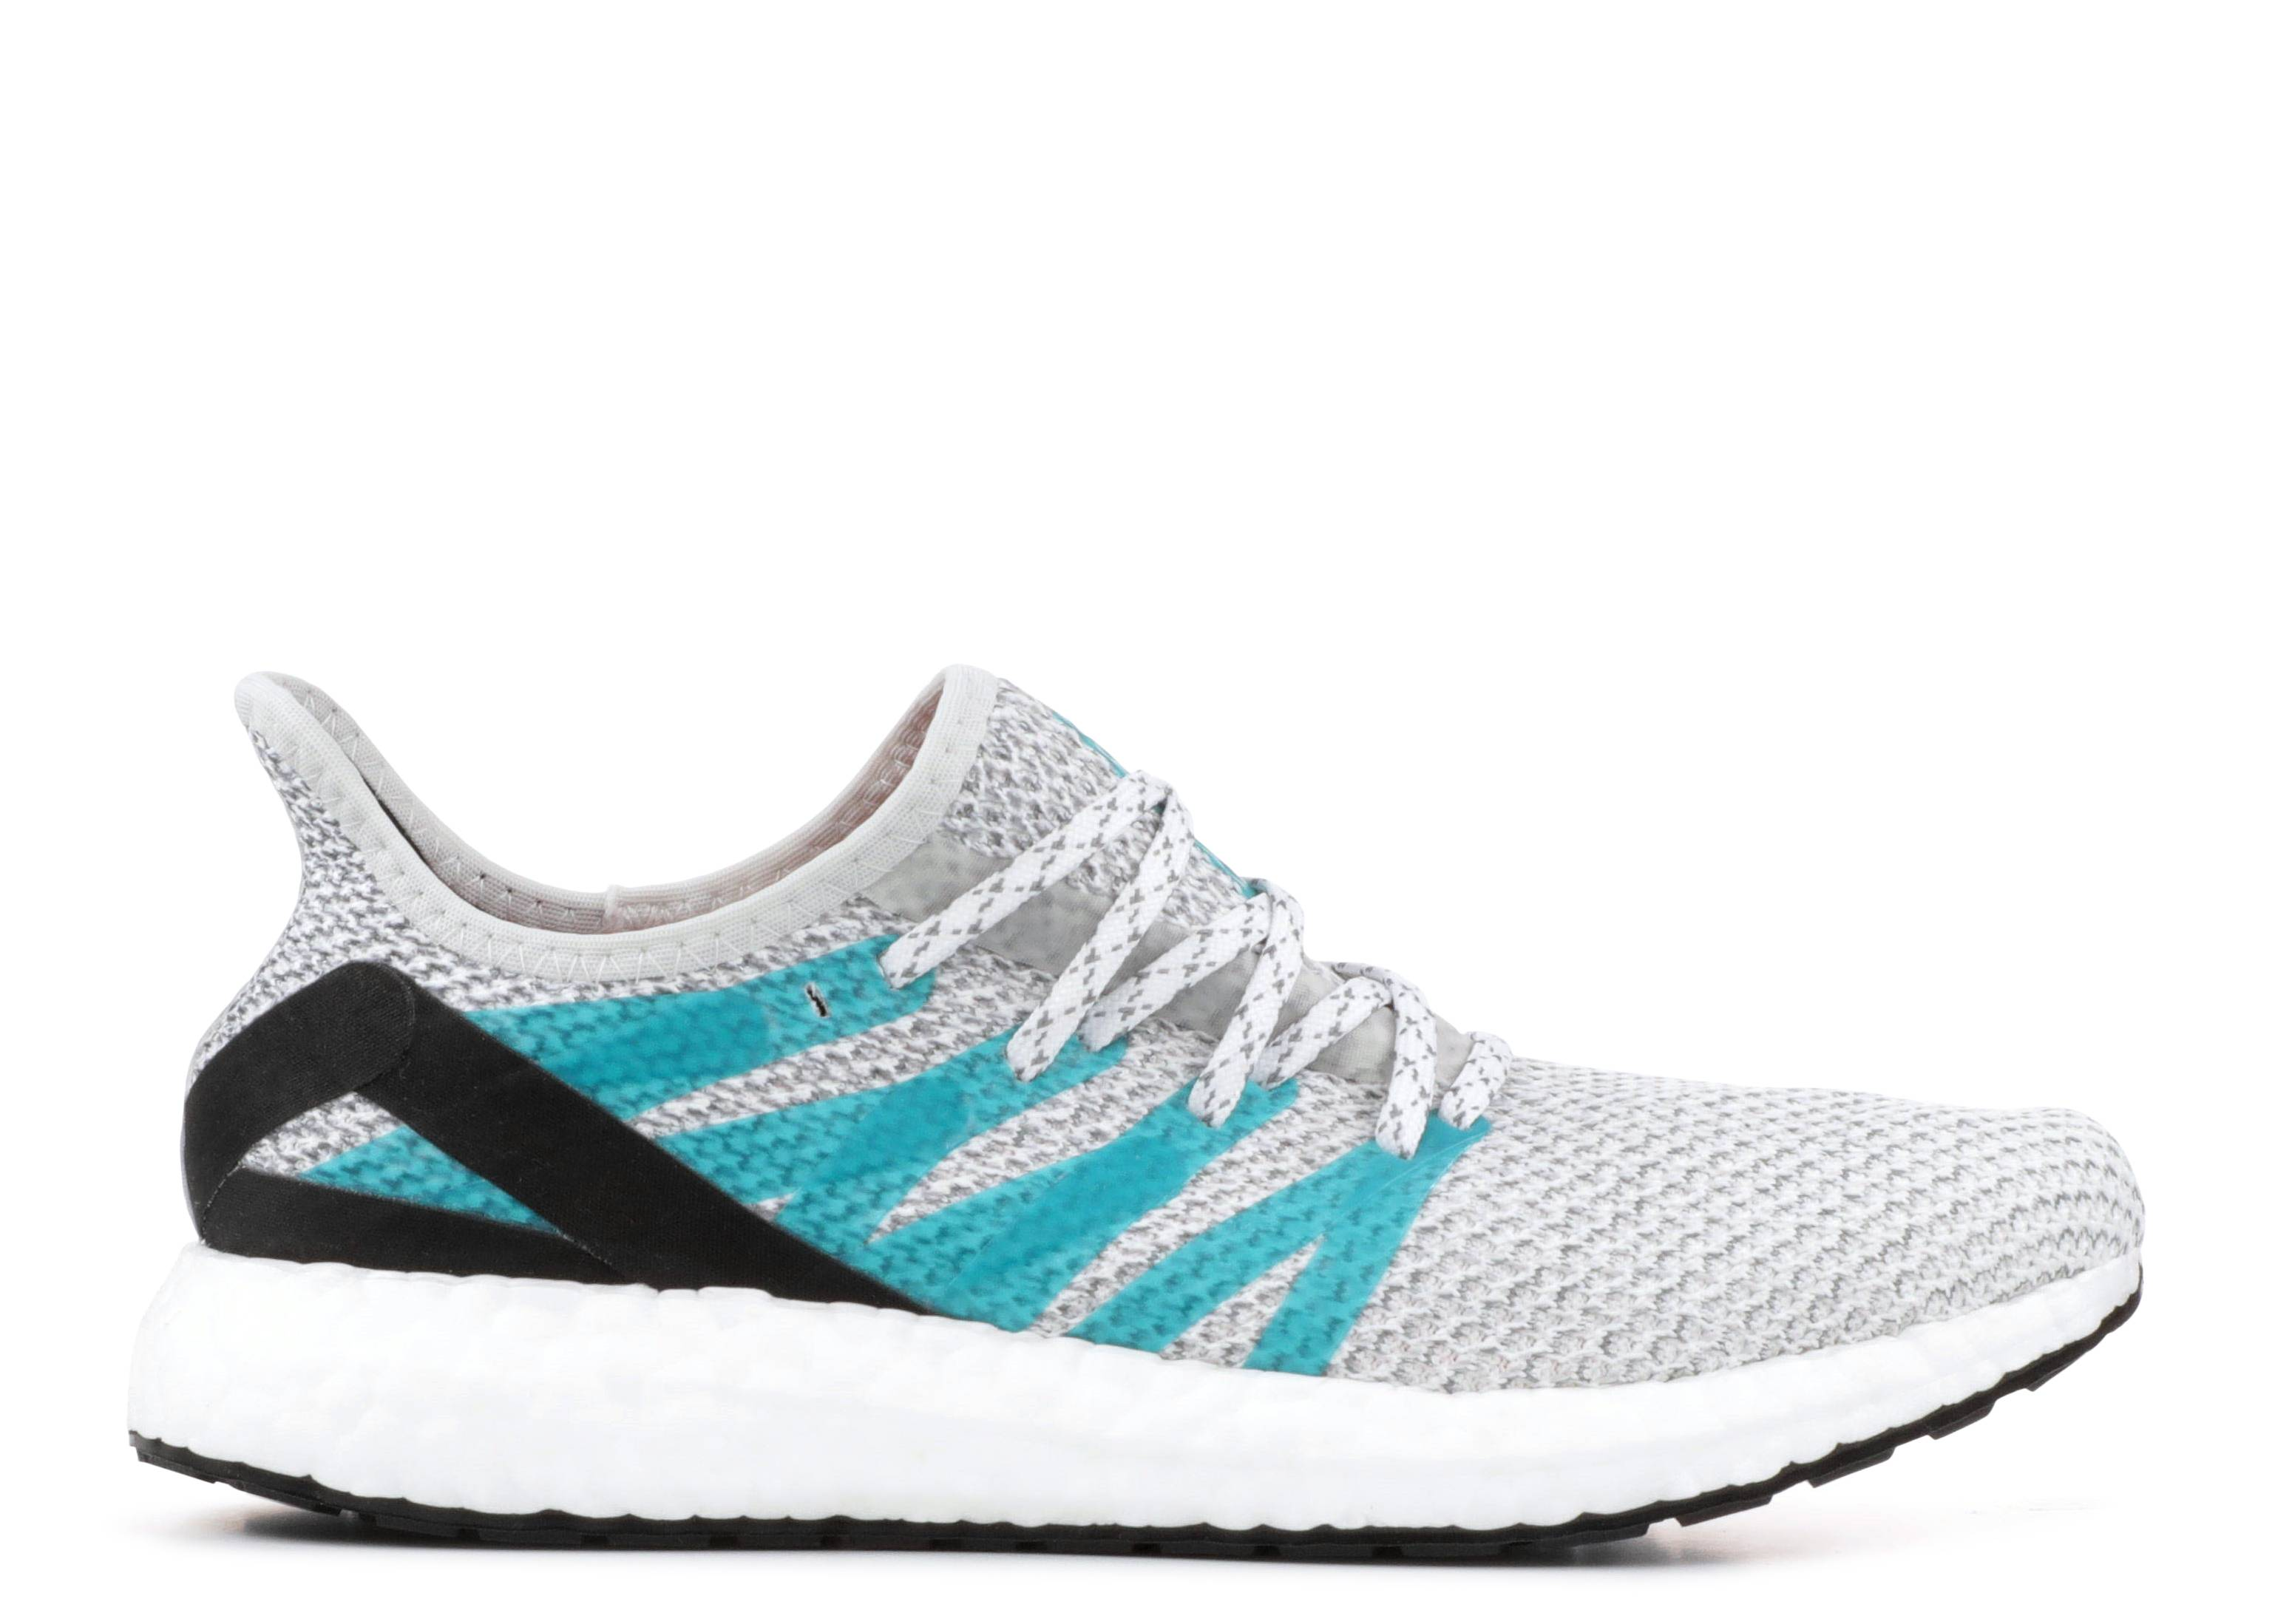 separation shoes c21ce 601e2 AM4LDN - Adidas - G25950 - cloud whiteshock green  Flight Cl